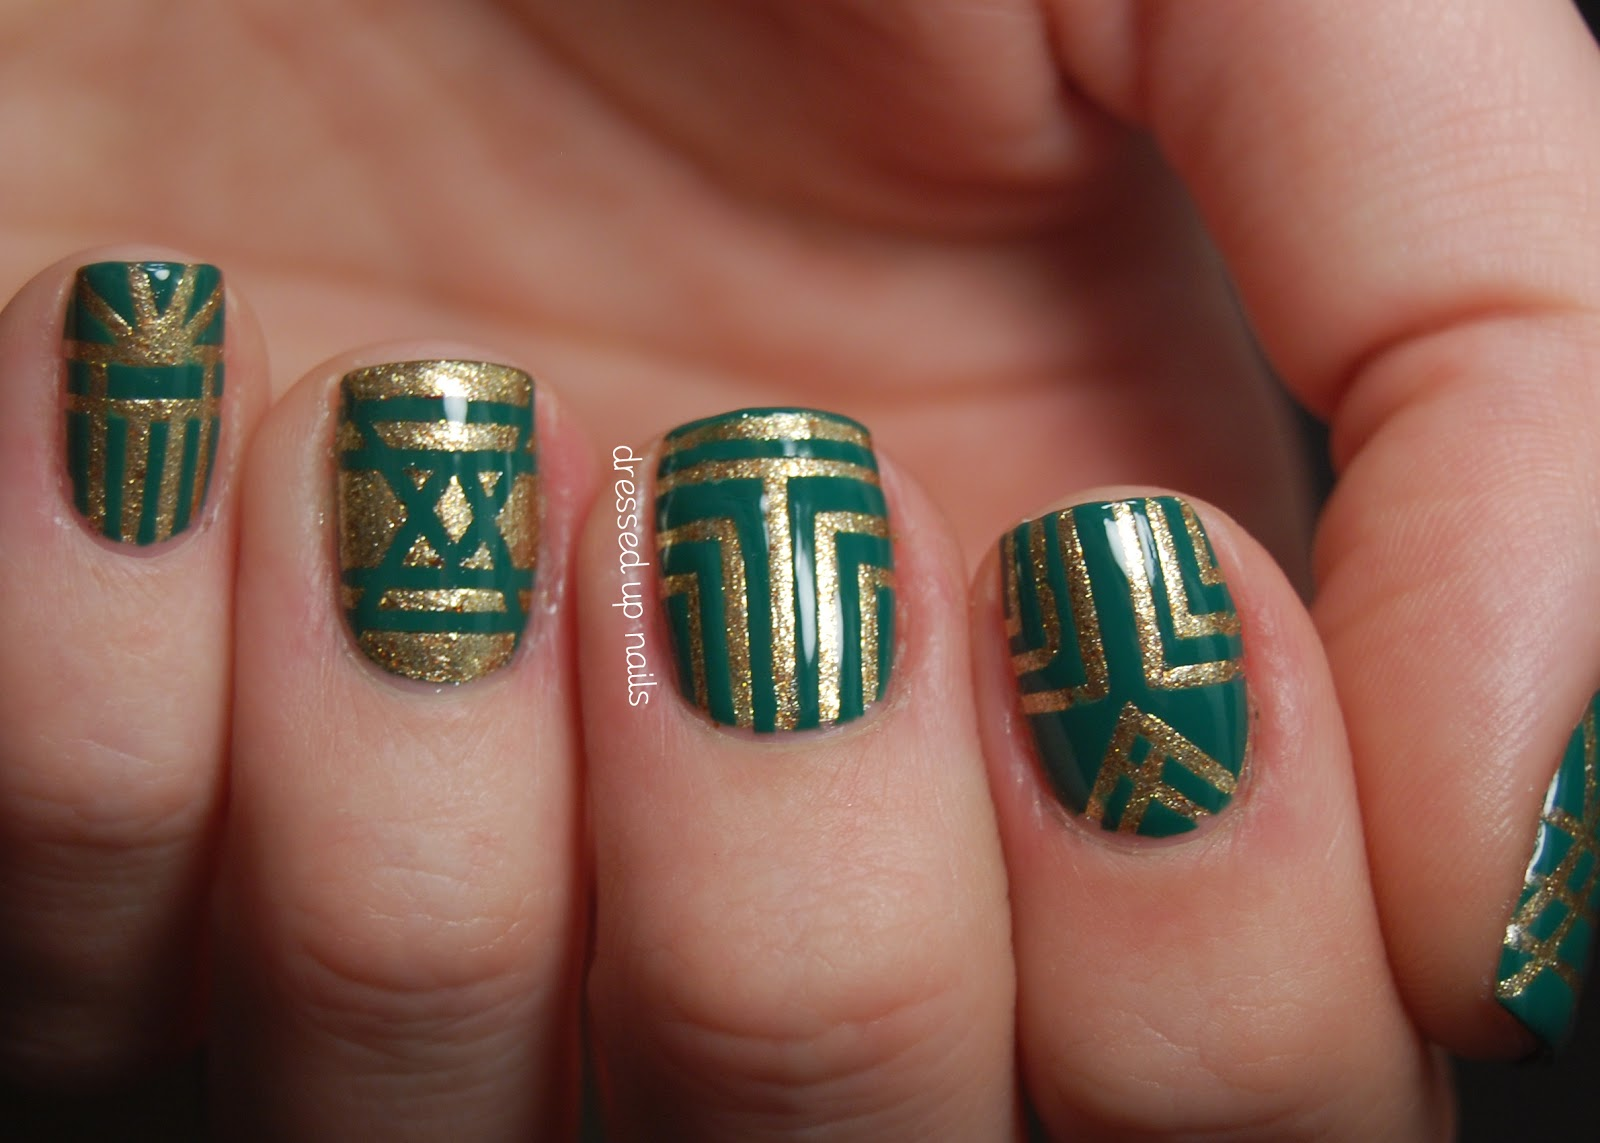 Gold nail art striping tape images nail art and nail design ideas golden nail art striping tape gold striping tape nail art view images nail art designs with prinsesfo Images